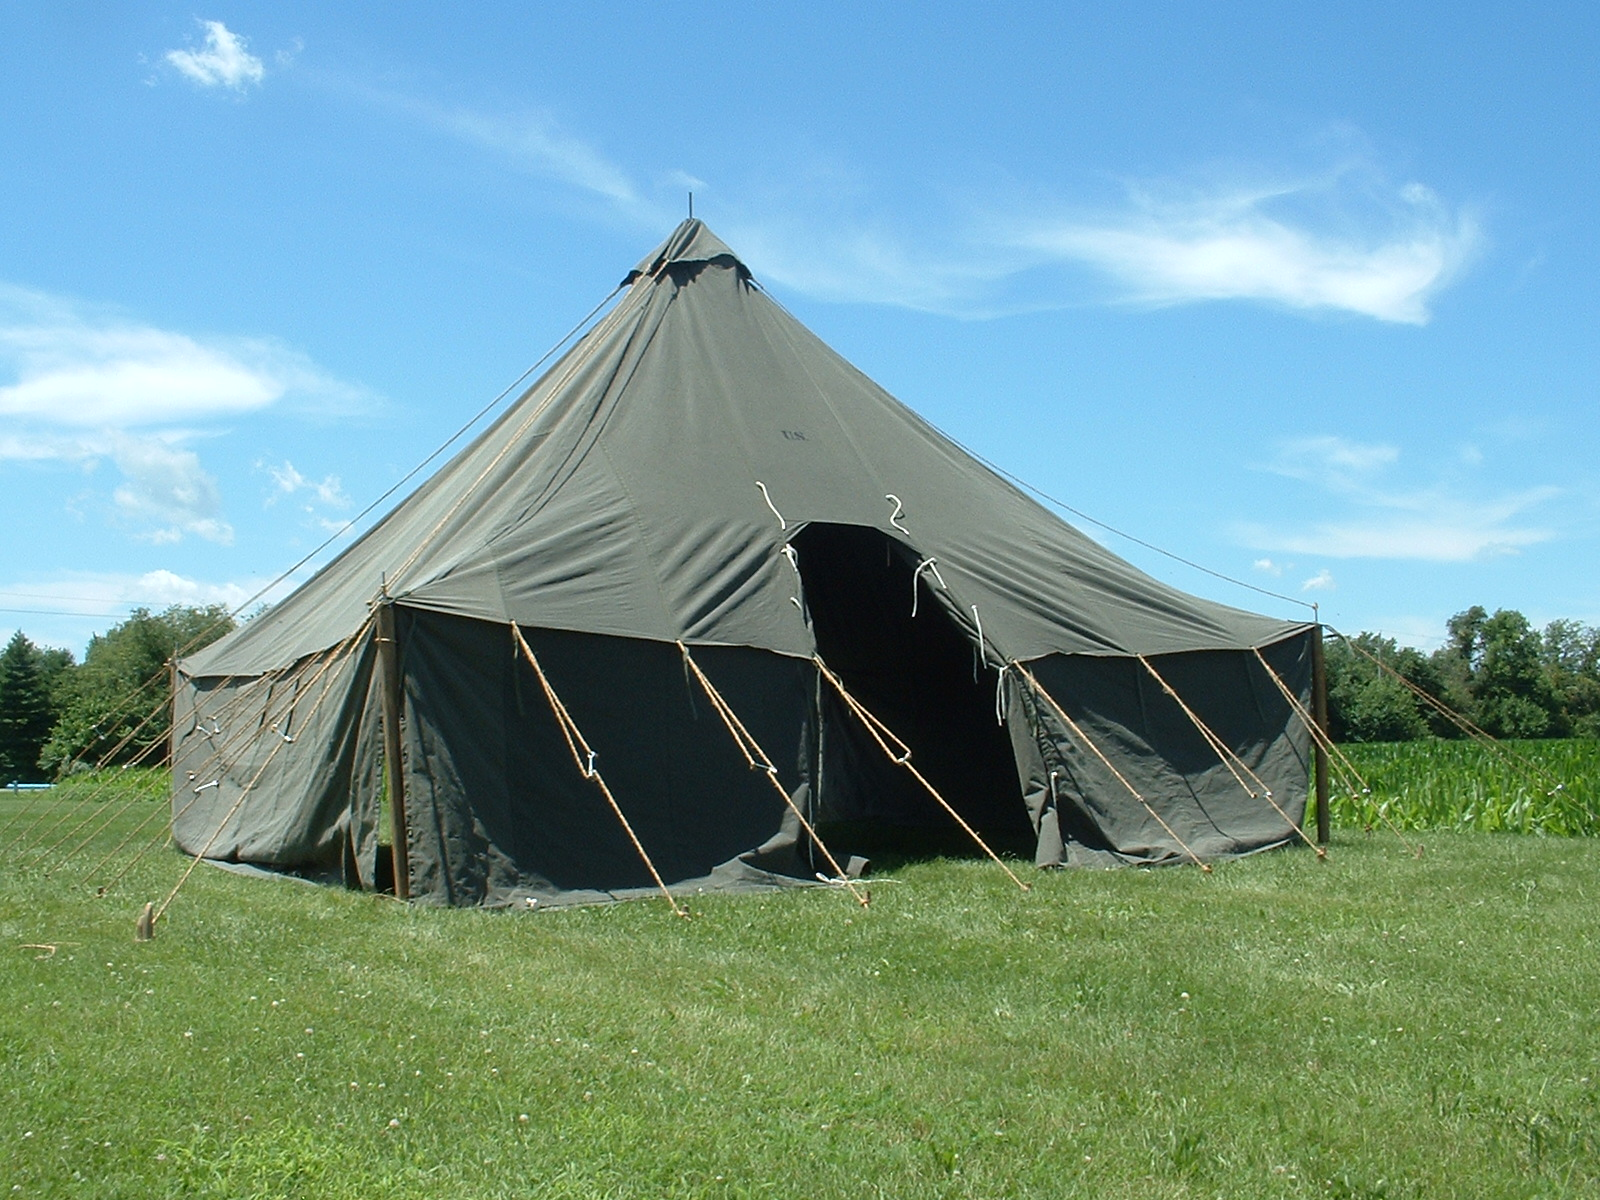 Armbruster Manufacturing Co  | 1934 Pyramidal Tent from Armbruster